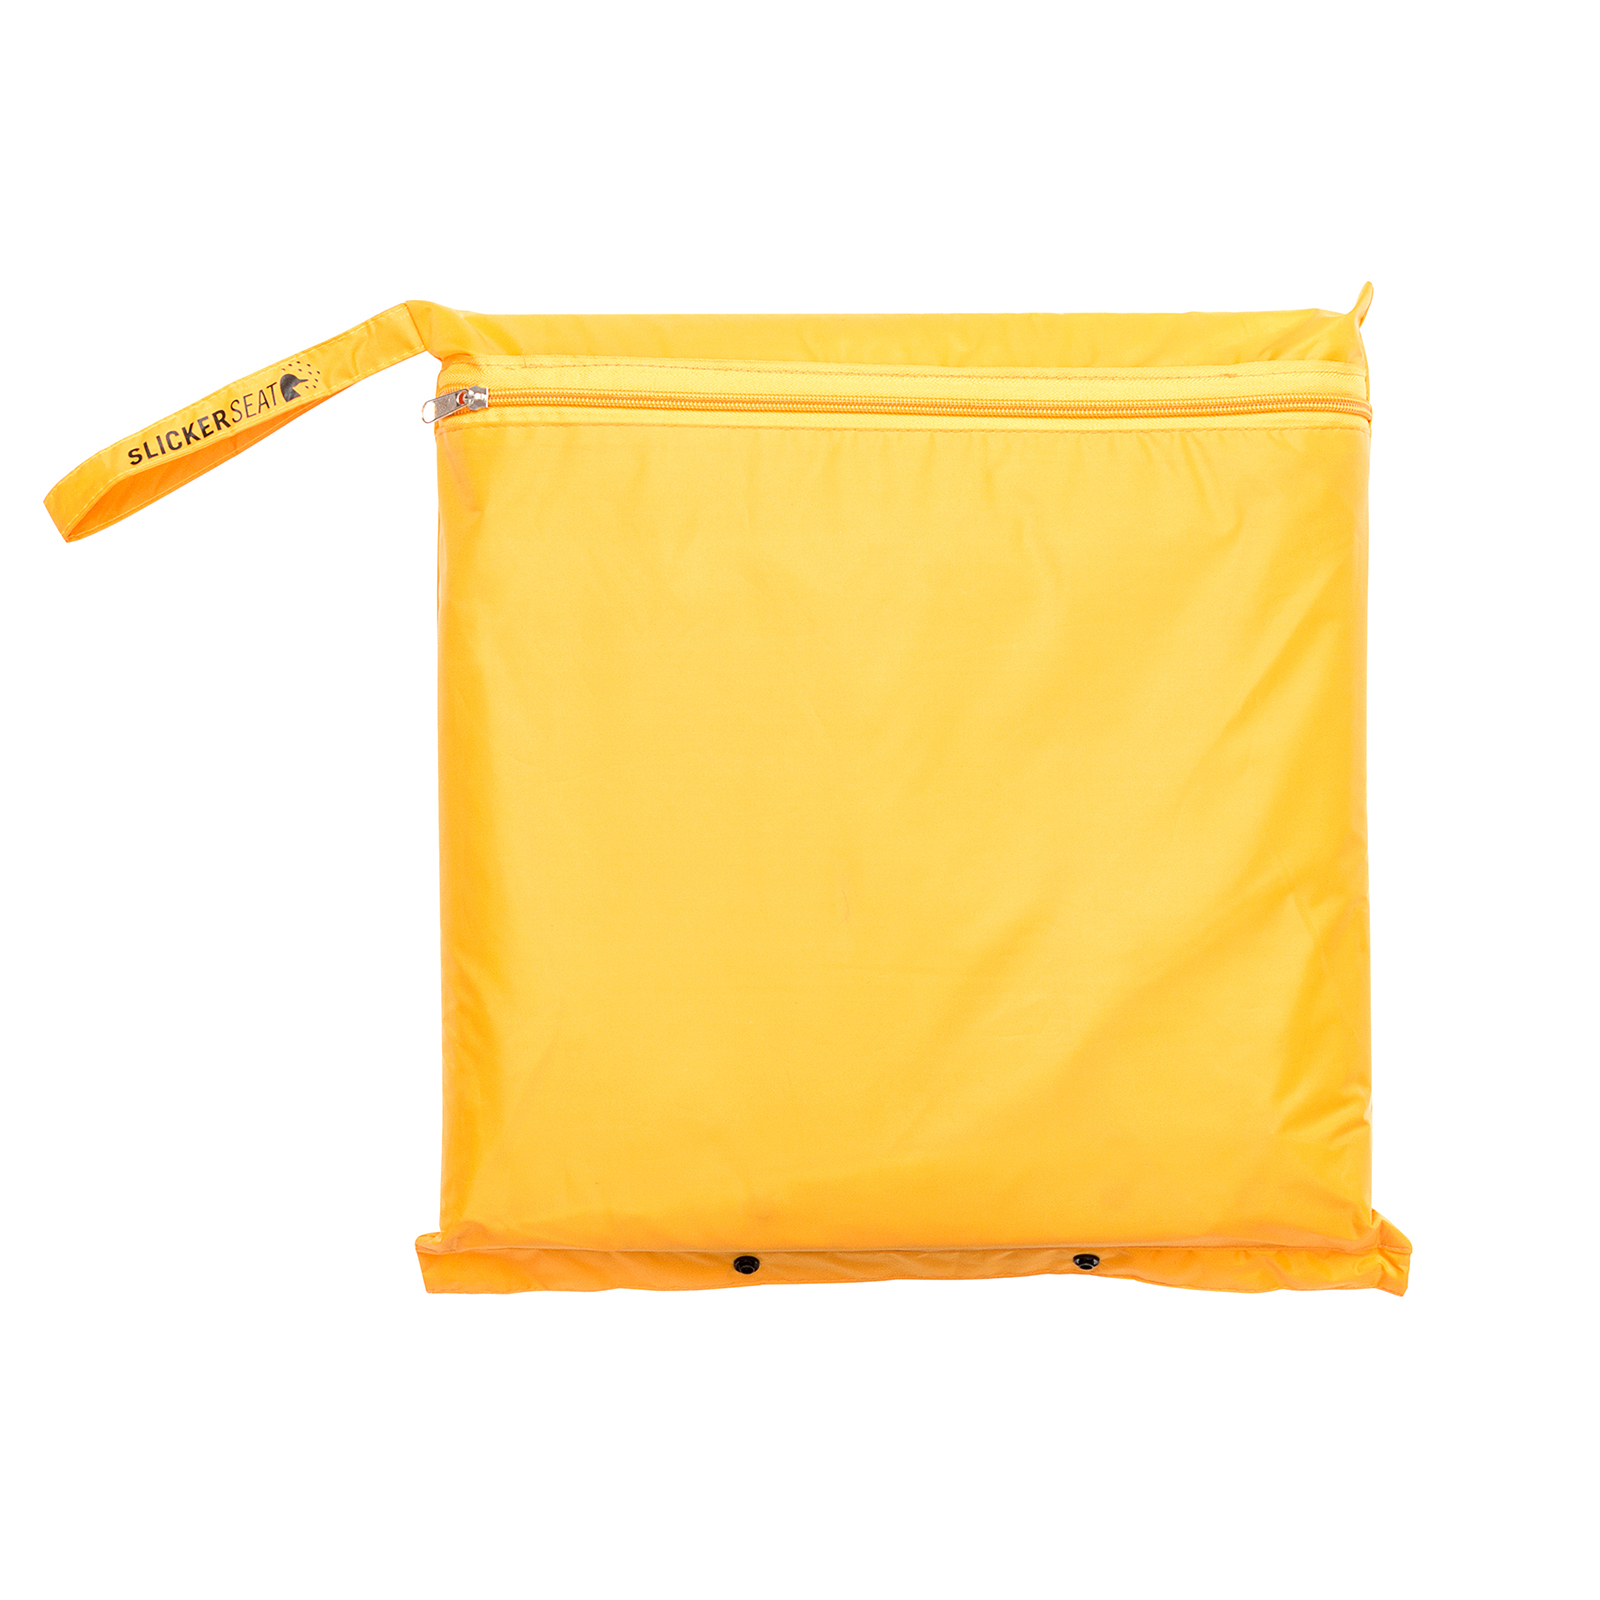 Built-In Portable Poncho w//Stadium Seat Cushion Slicker Seat Unisex Raincoat